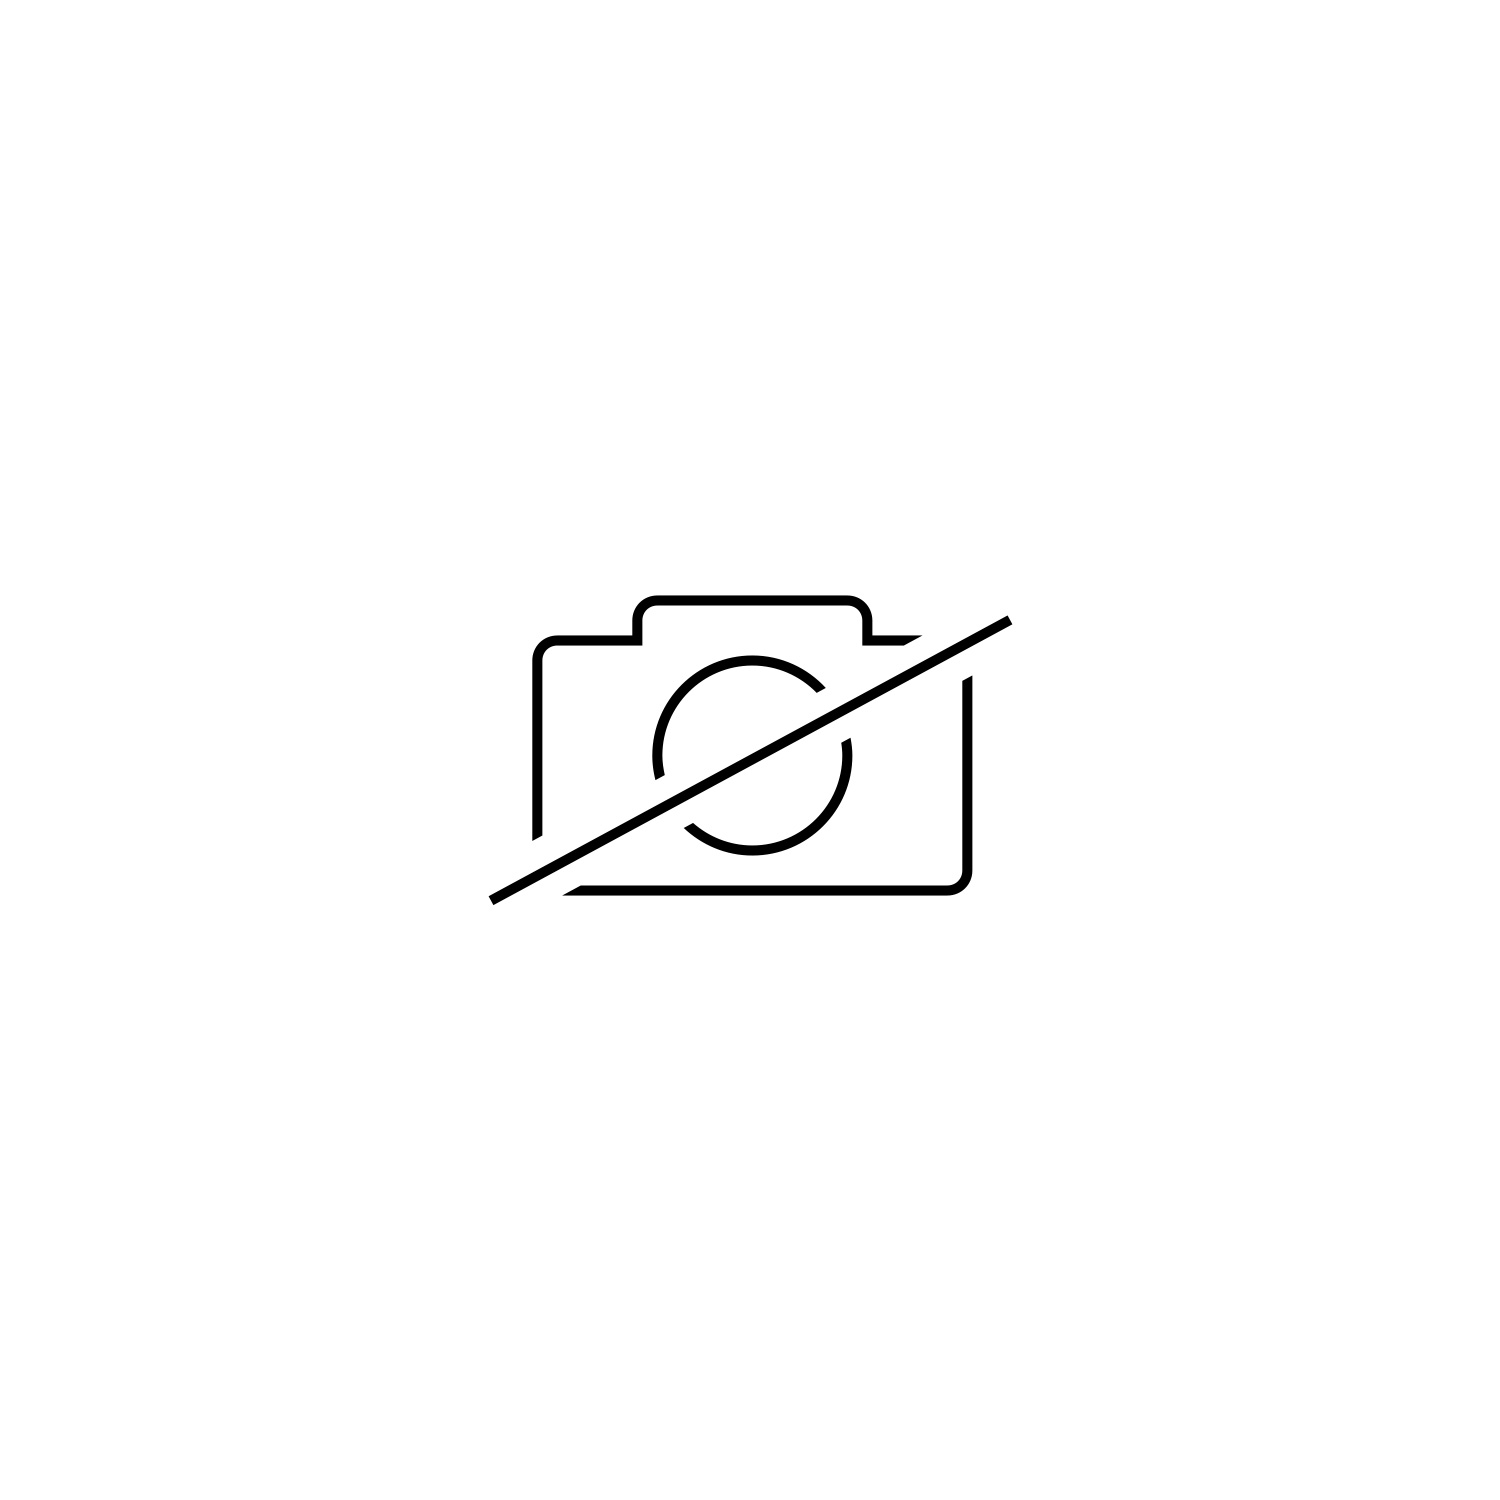 Audi Poloshirt, Mens, Dark grey, XL